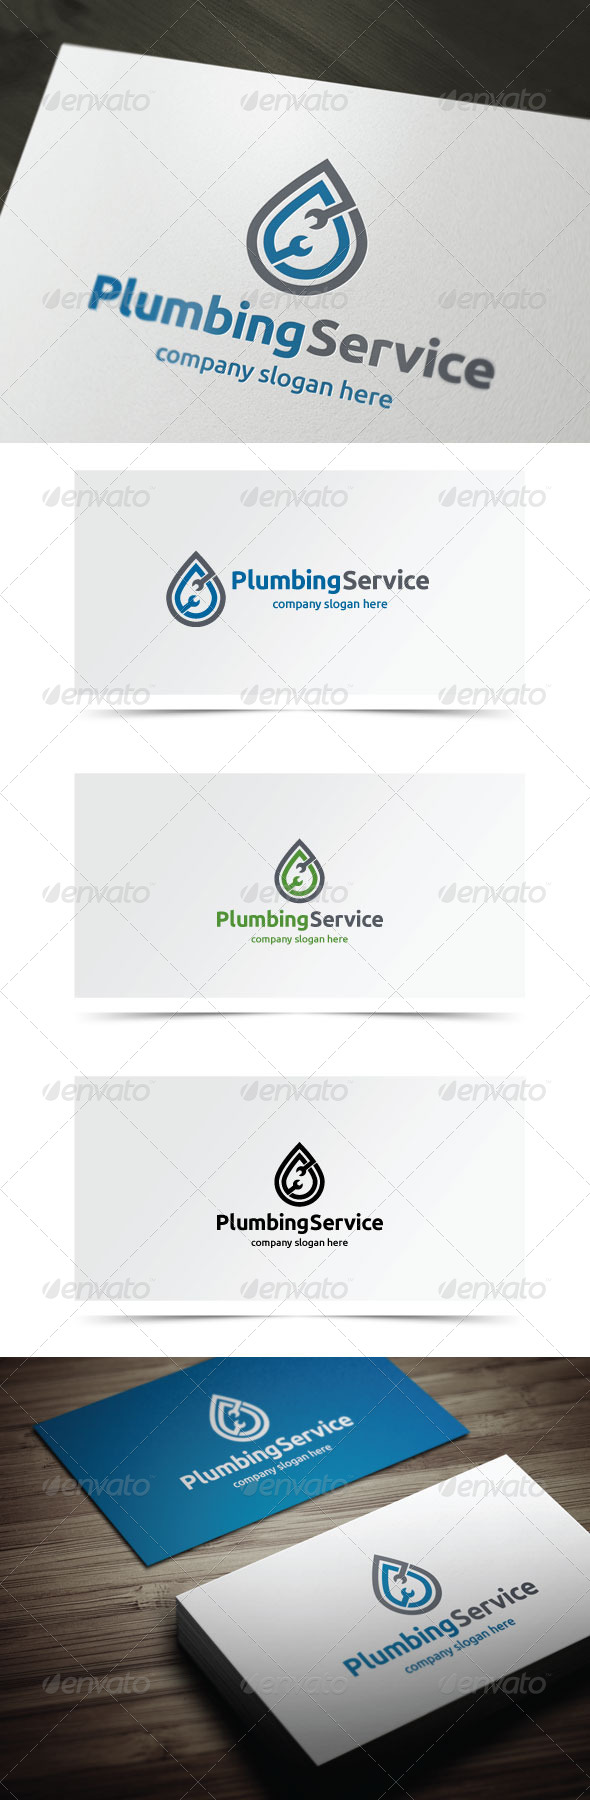 GraphicRiver Plumbing Service 7151761